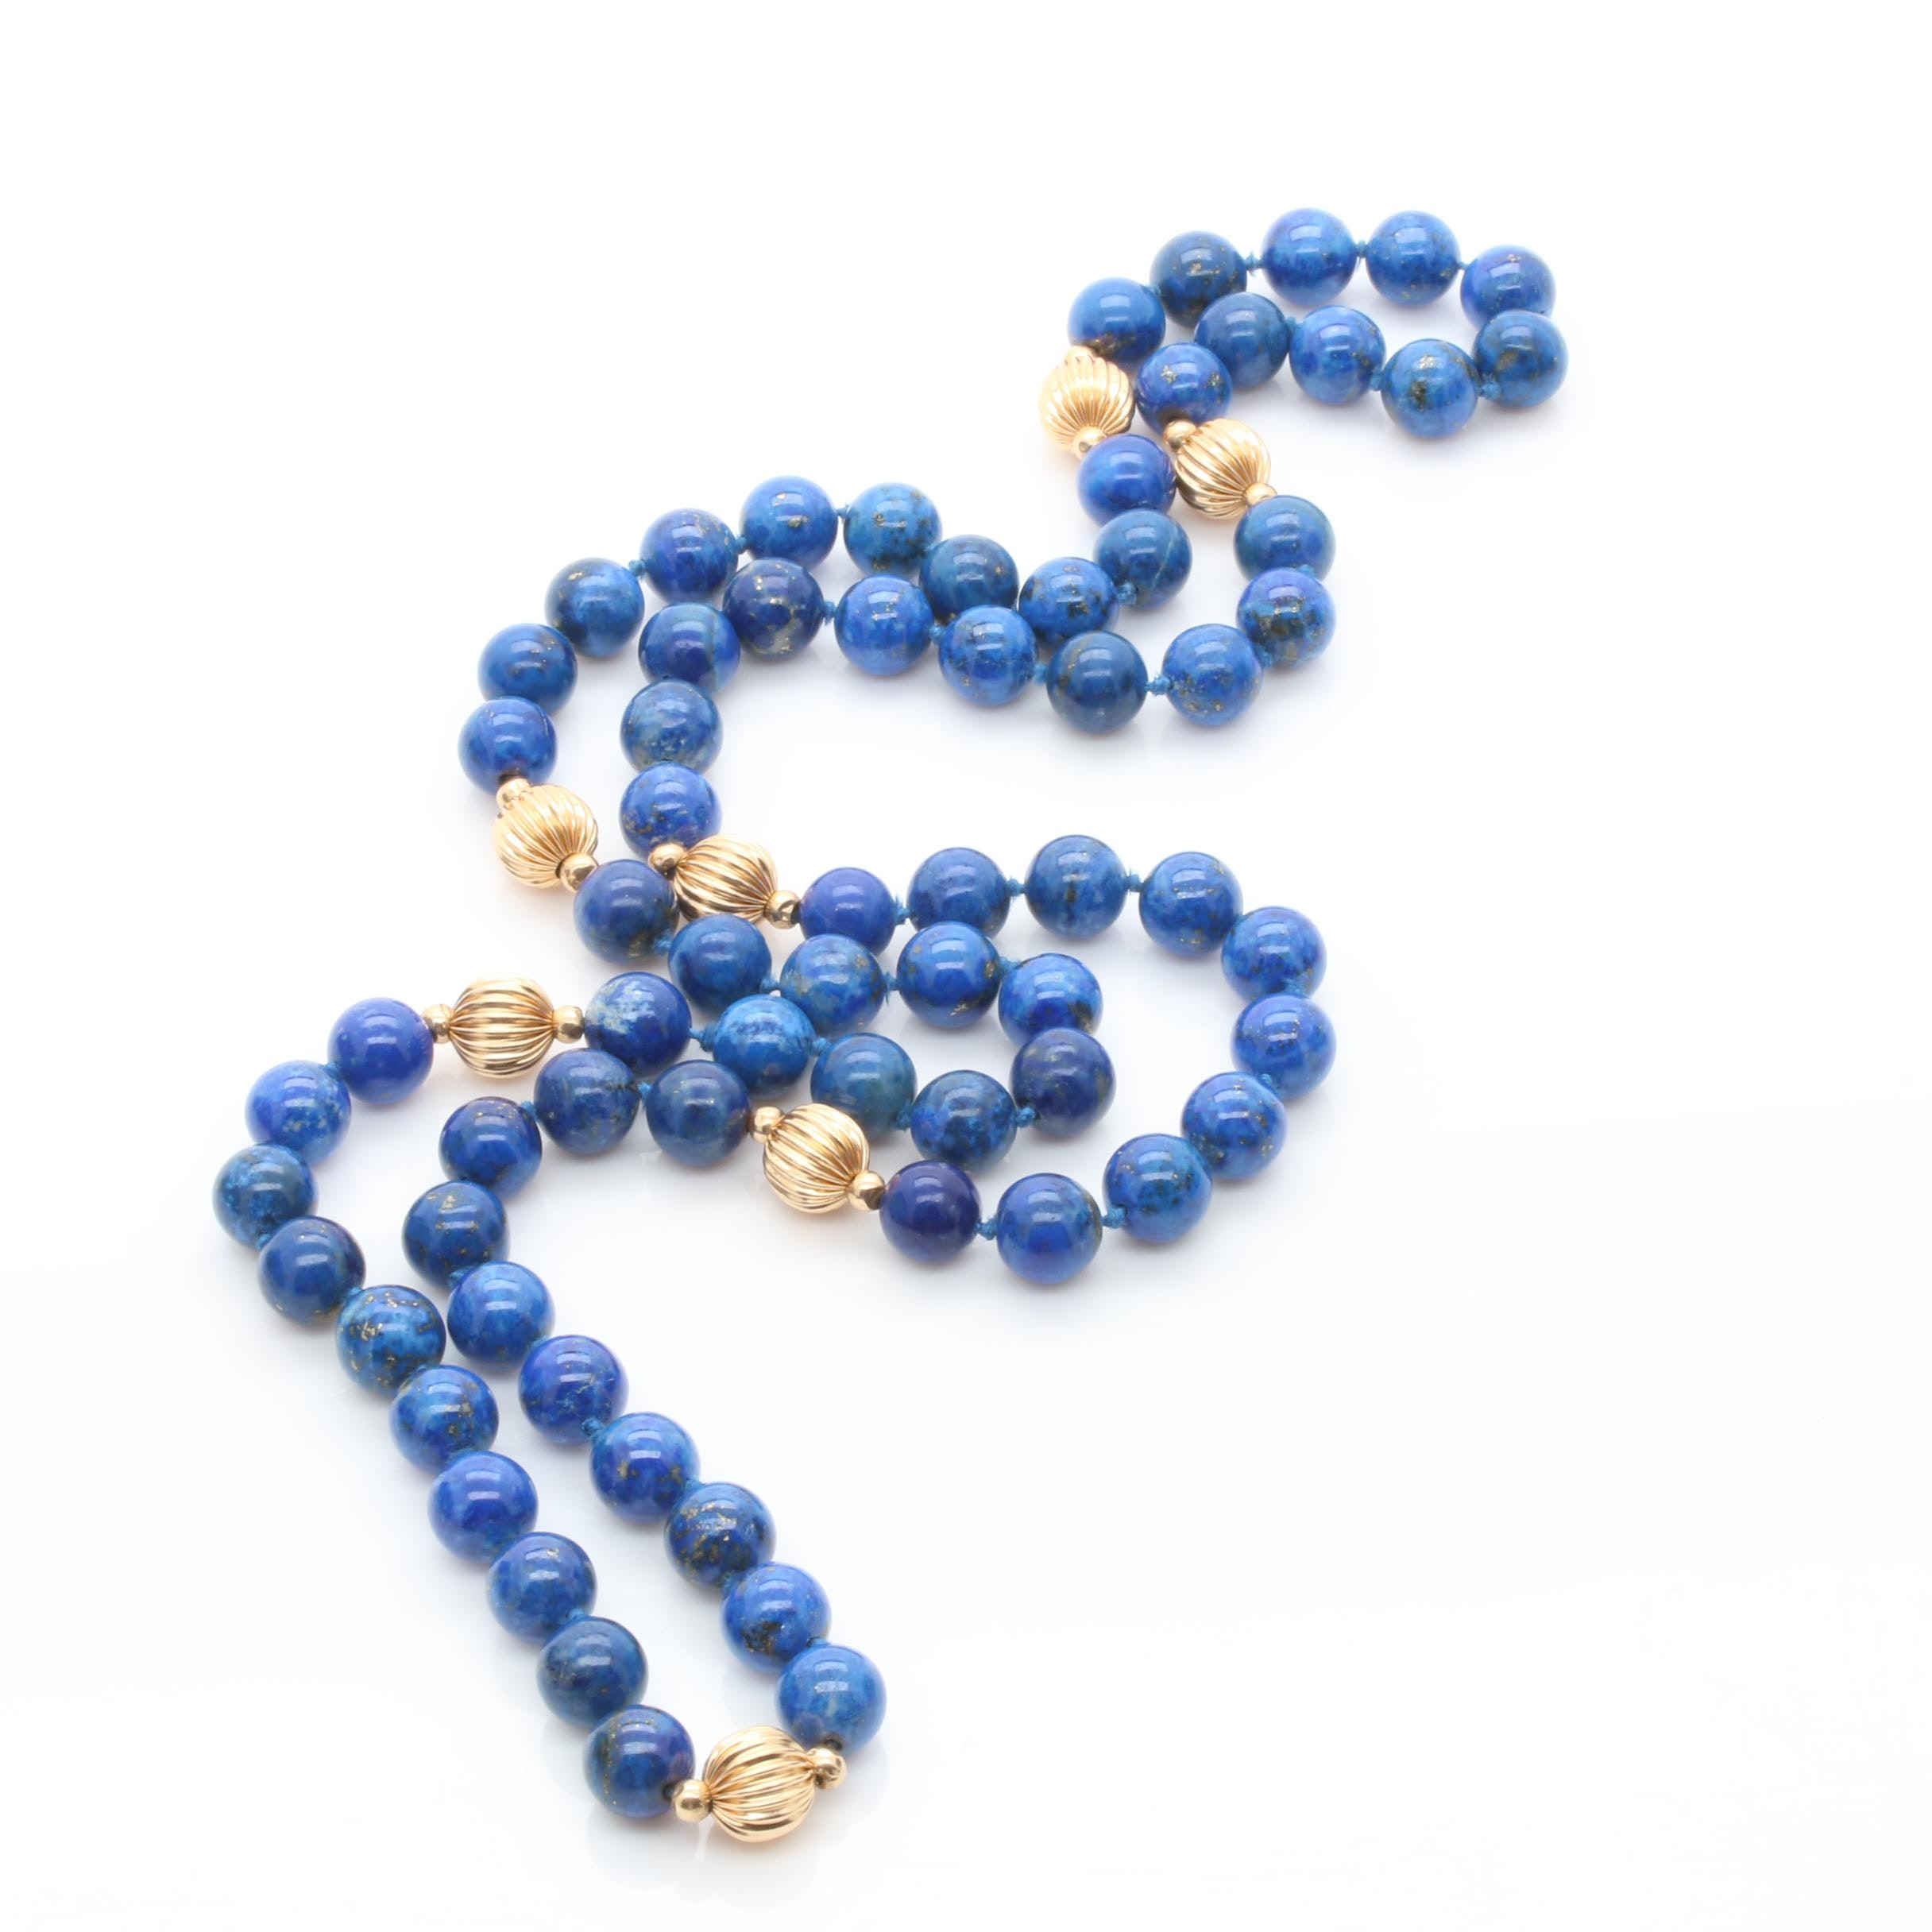 14K Yellow Gold Lapis Lazuli Beaded Necklace